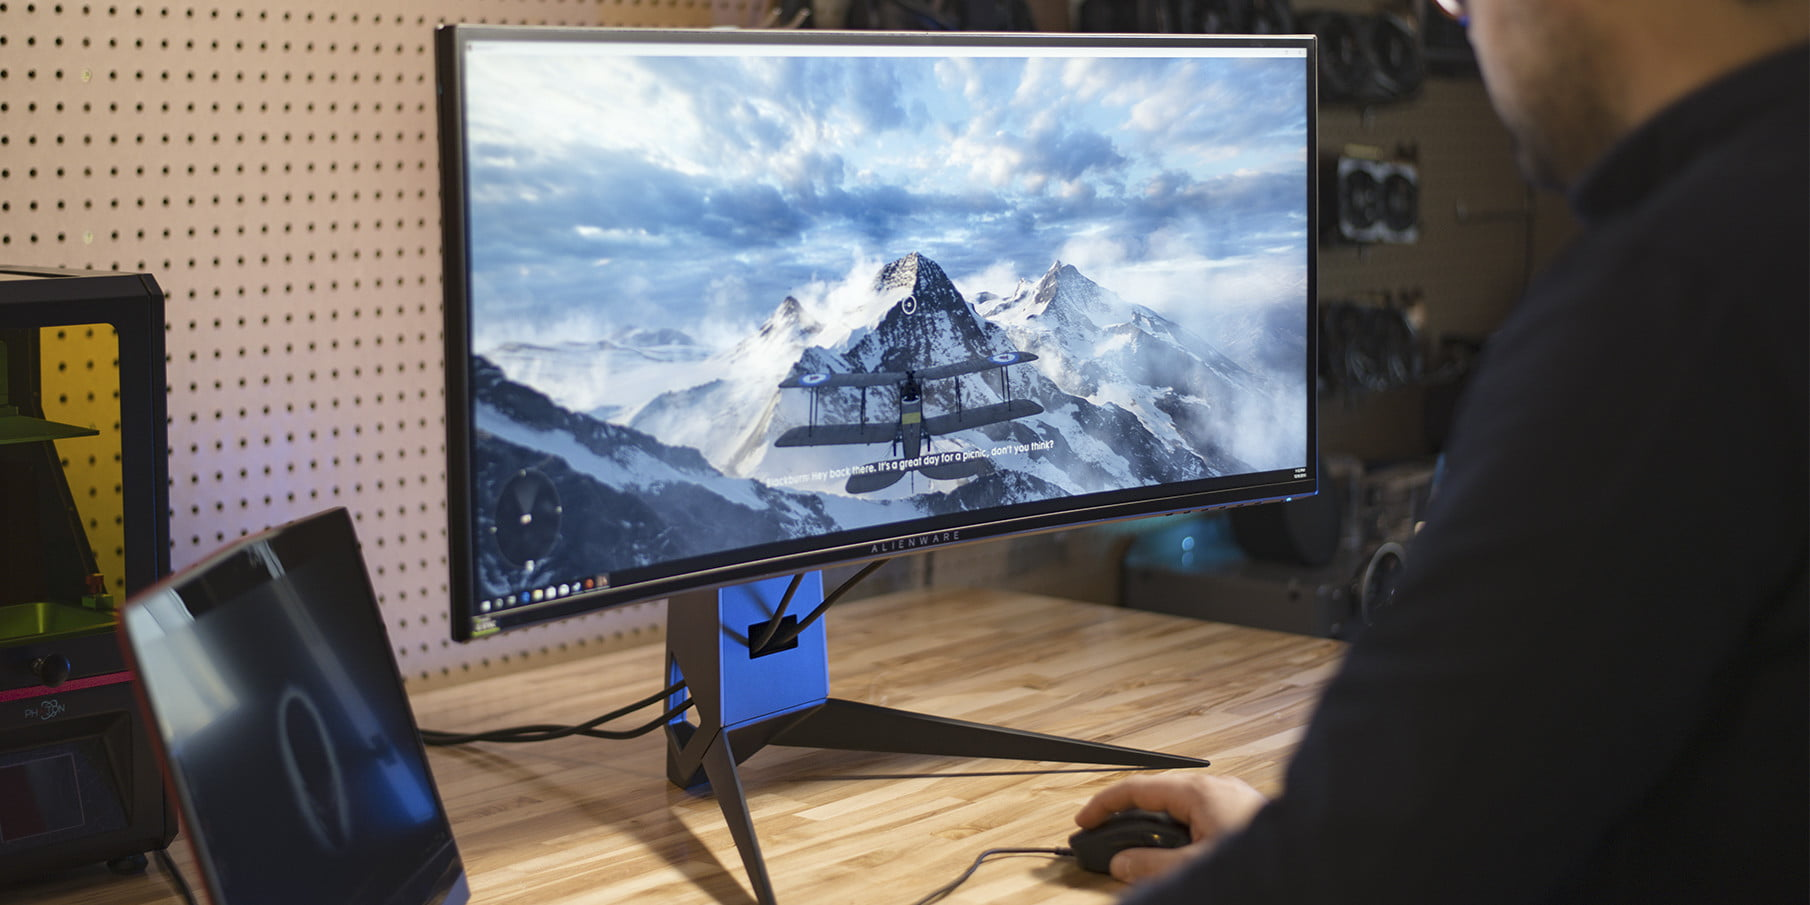 Things To Consider While Buying Computer Gaming Monitors